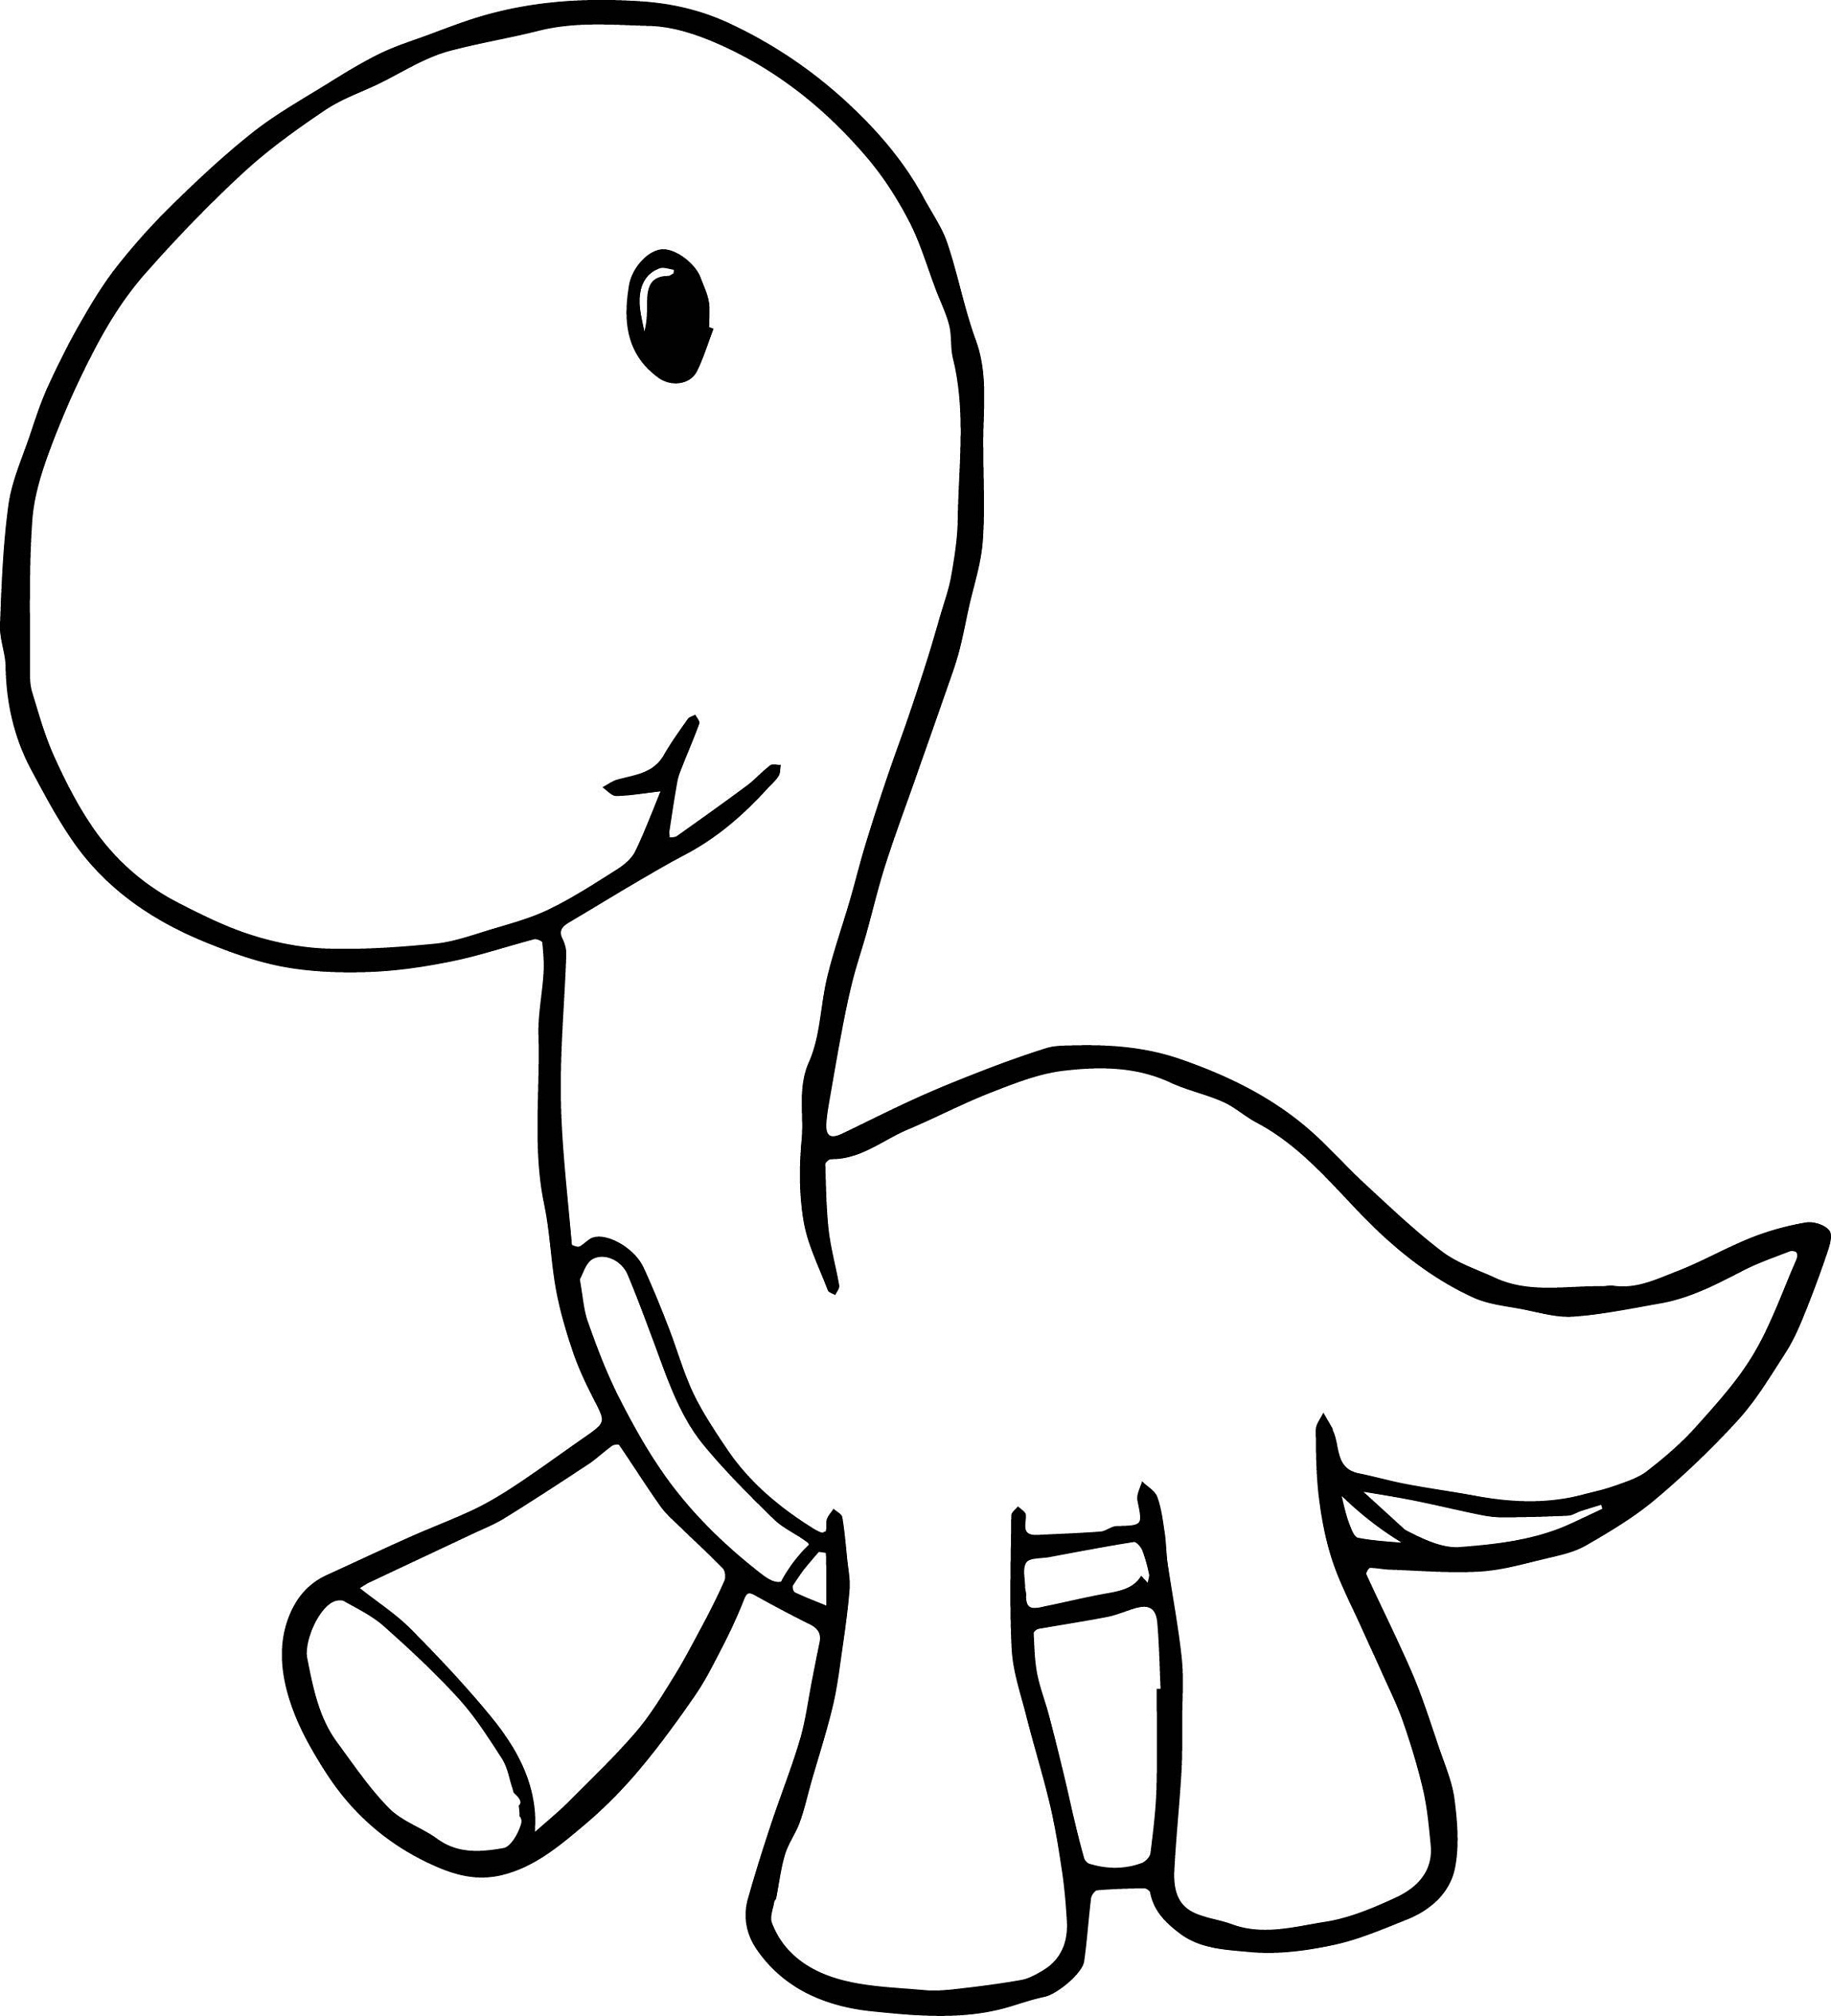 Baby Dinosaur Coloring Pages for Preschoolers | Activity Shelter